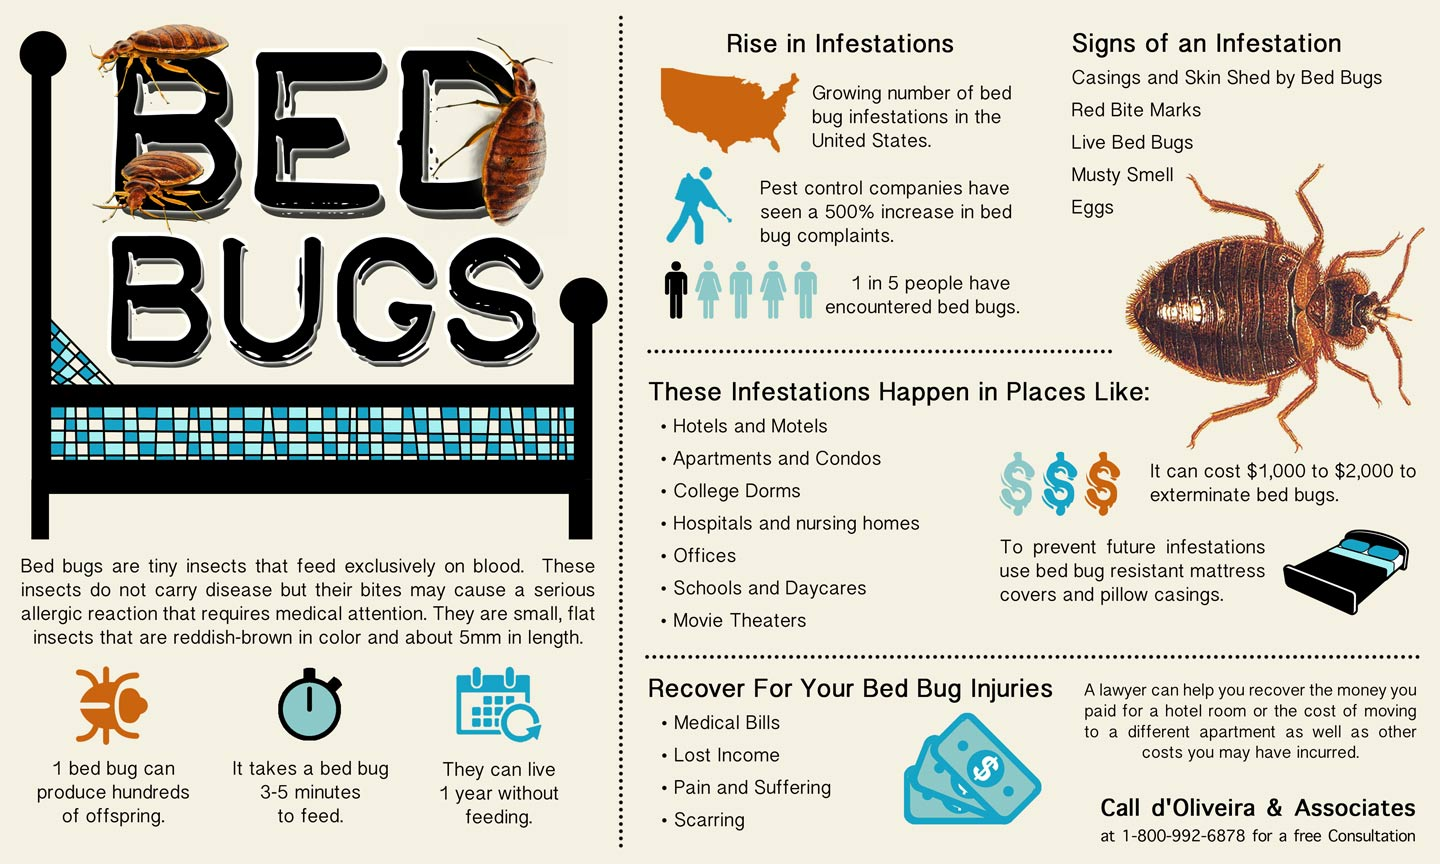 bug about you how bugs do information blog get bed